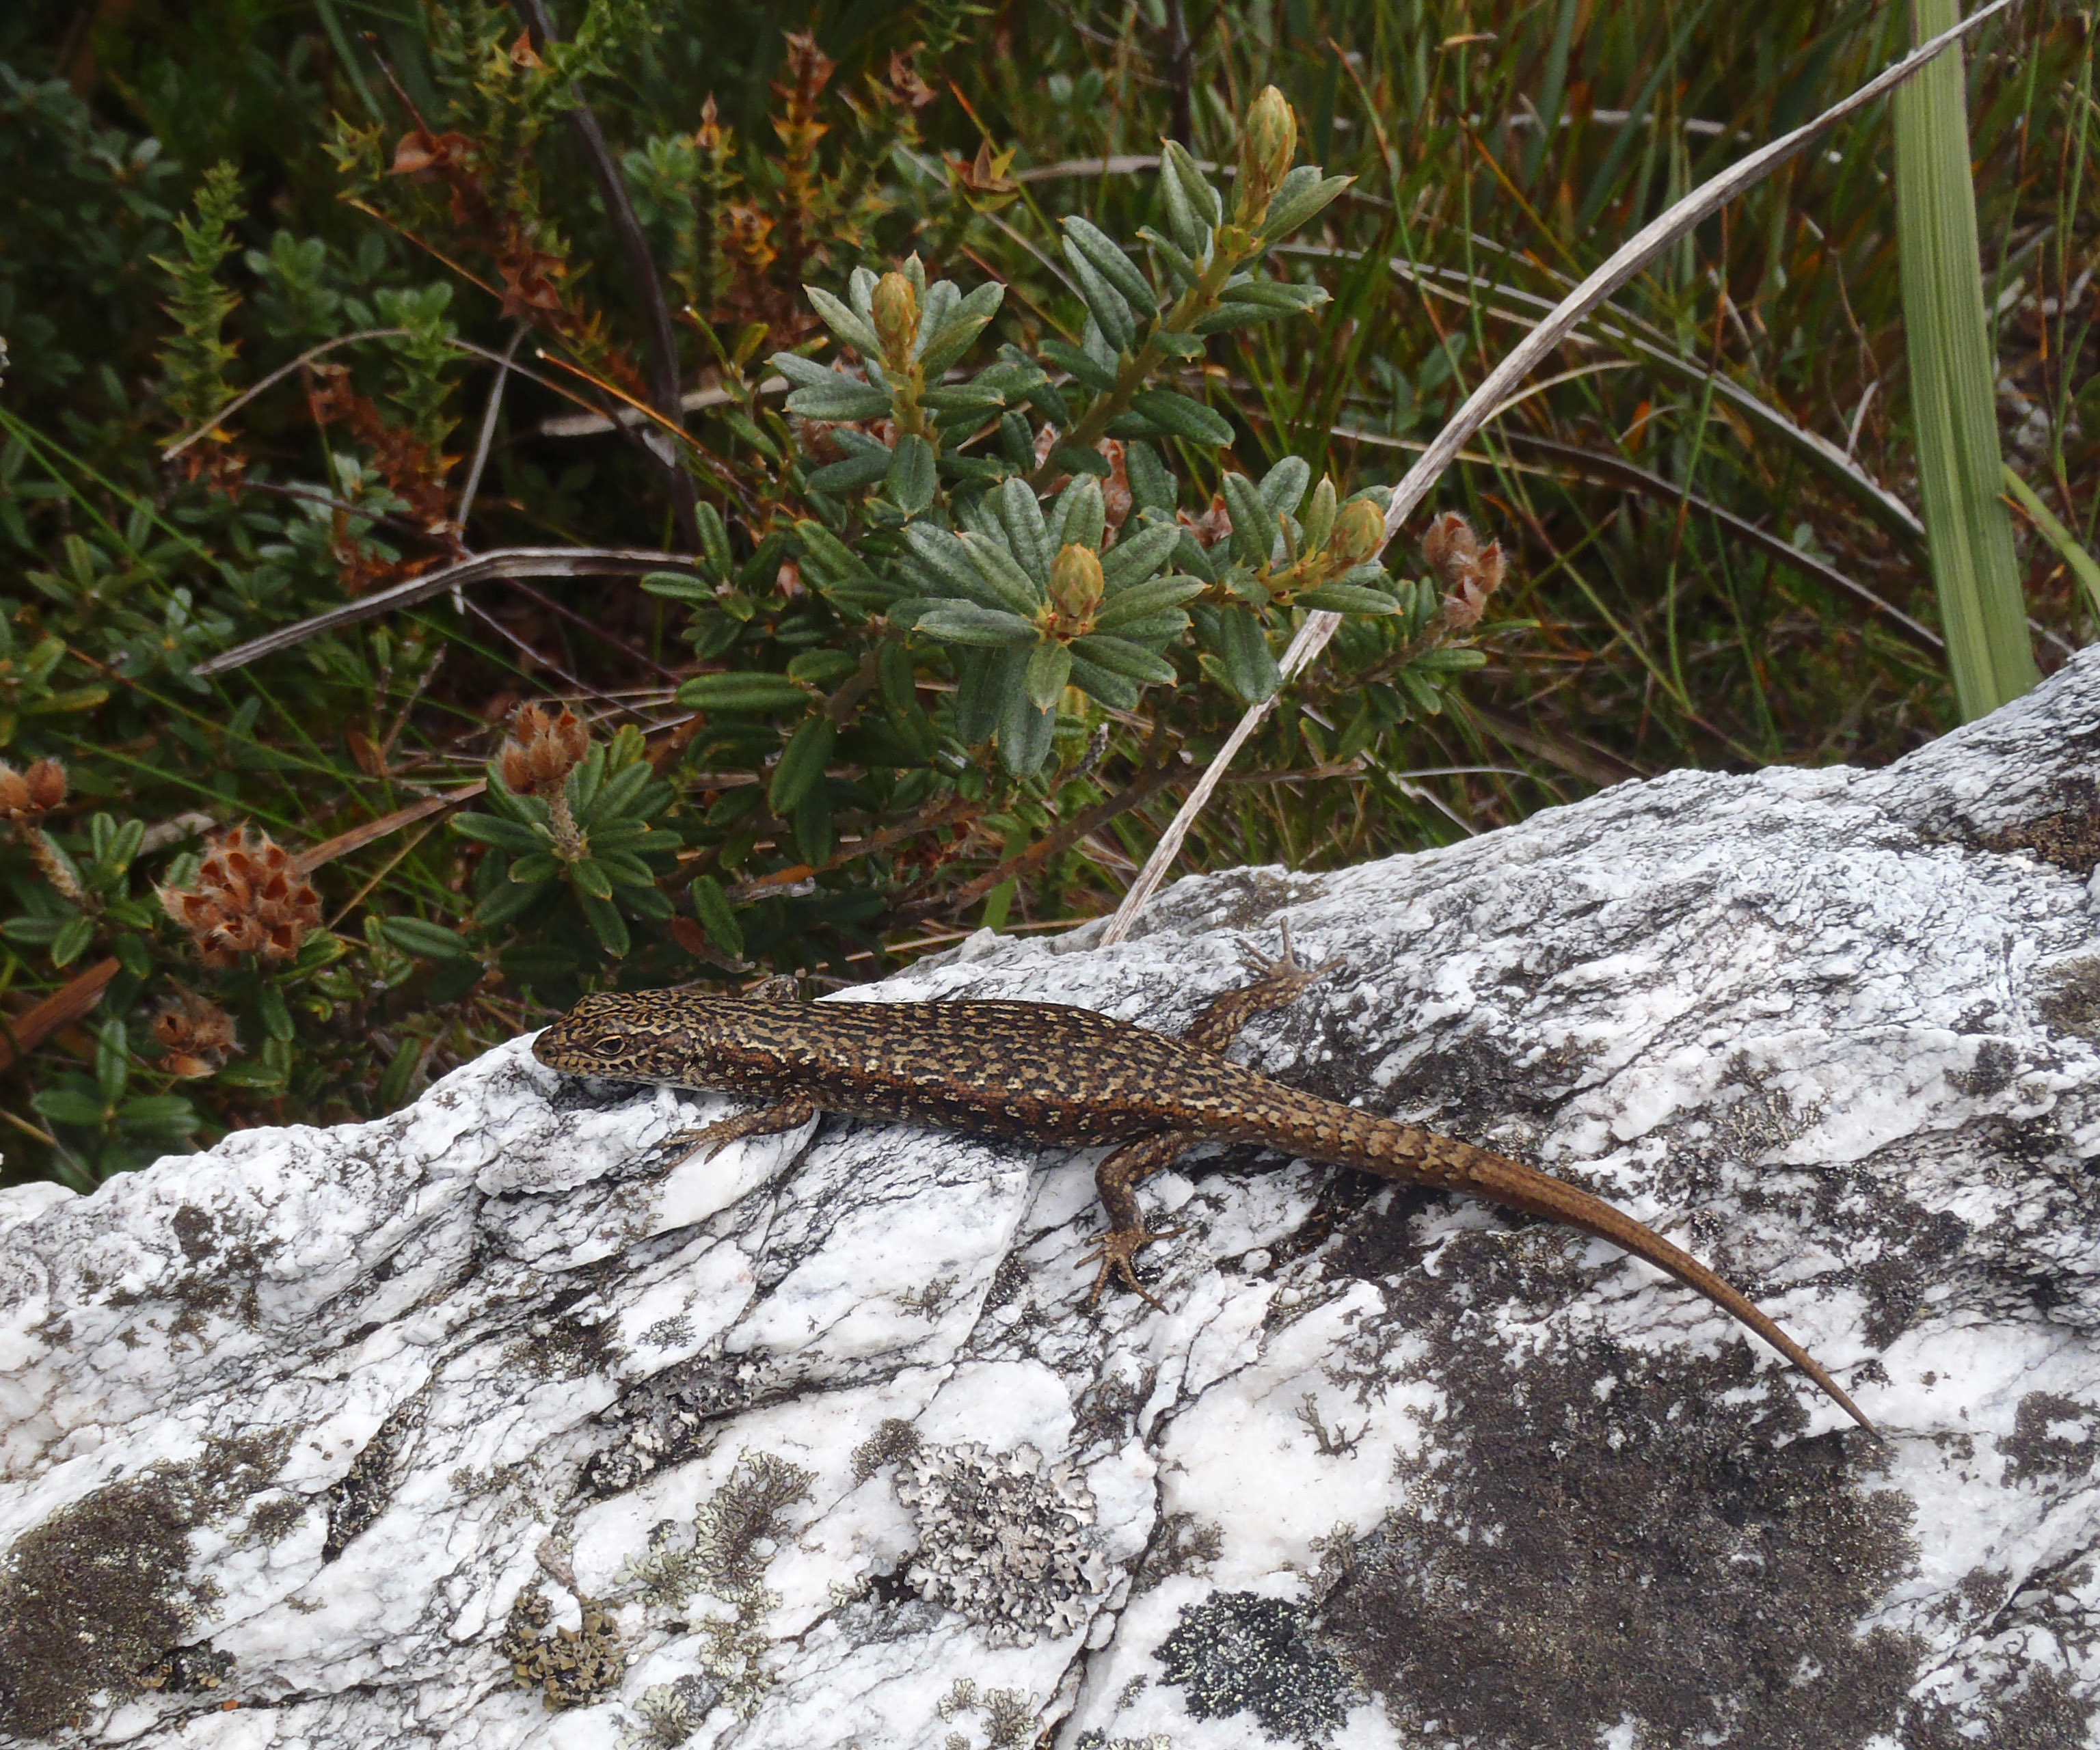 Image of Spotted Skink